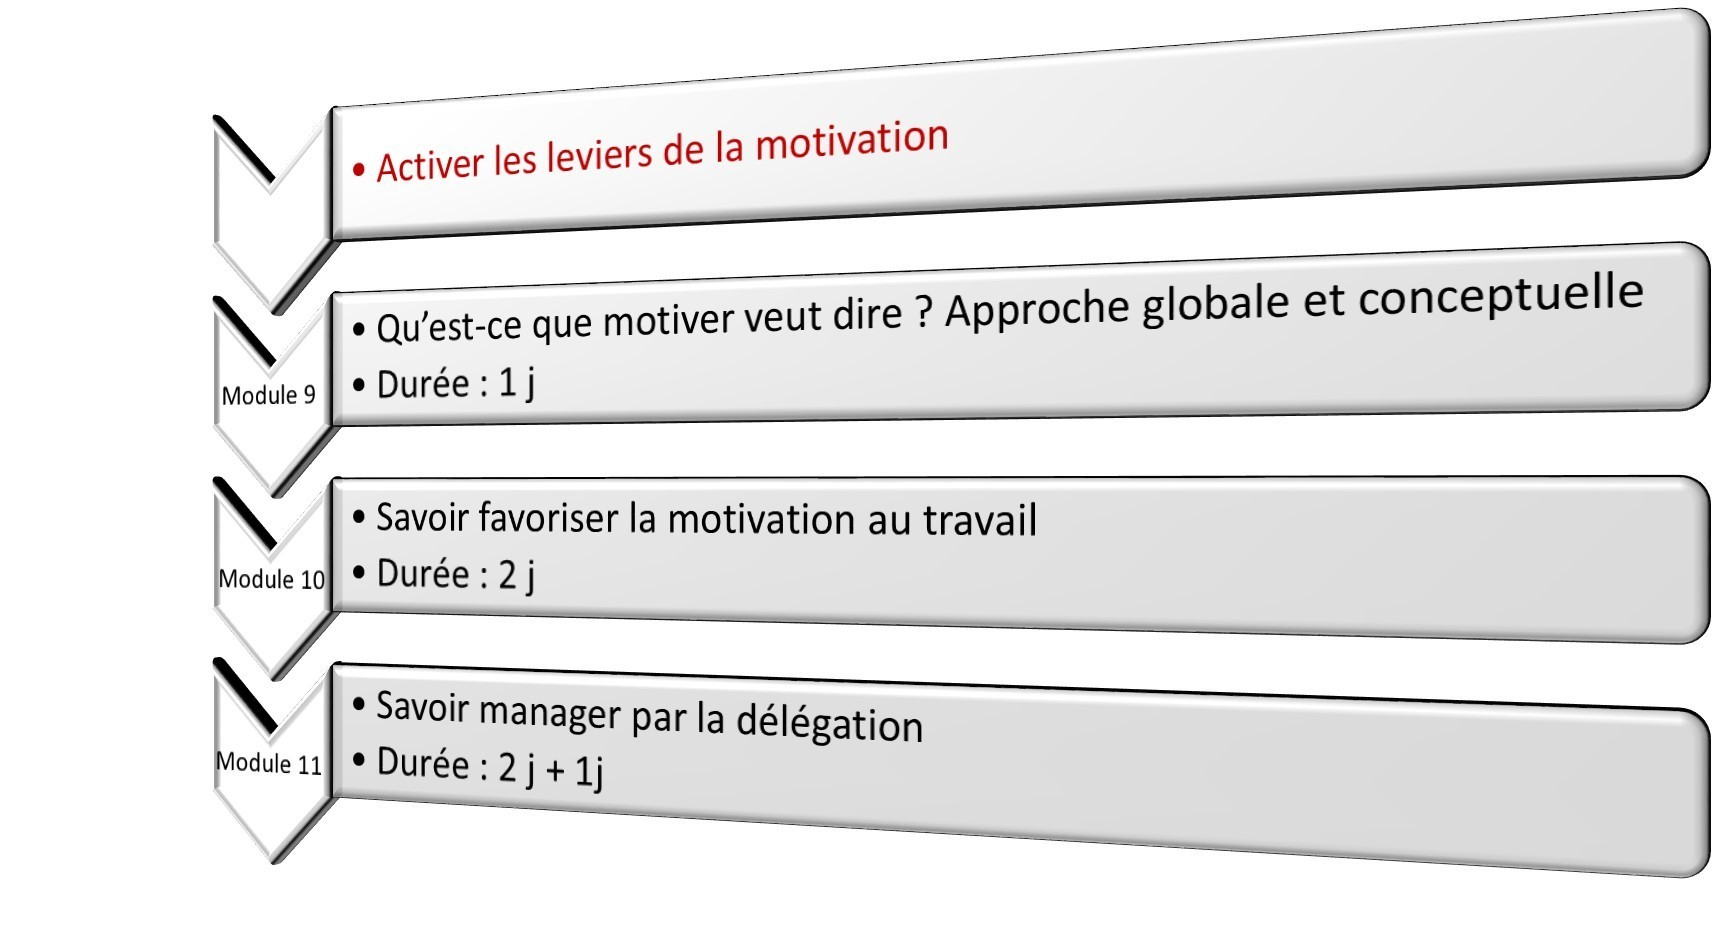 Activer les leviers de la motivation